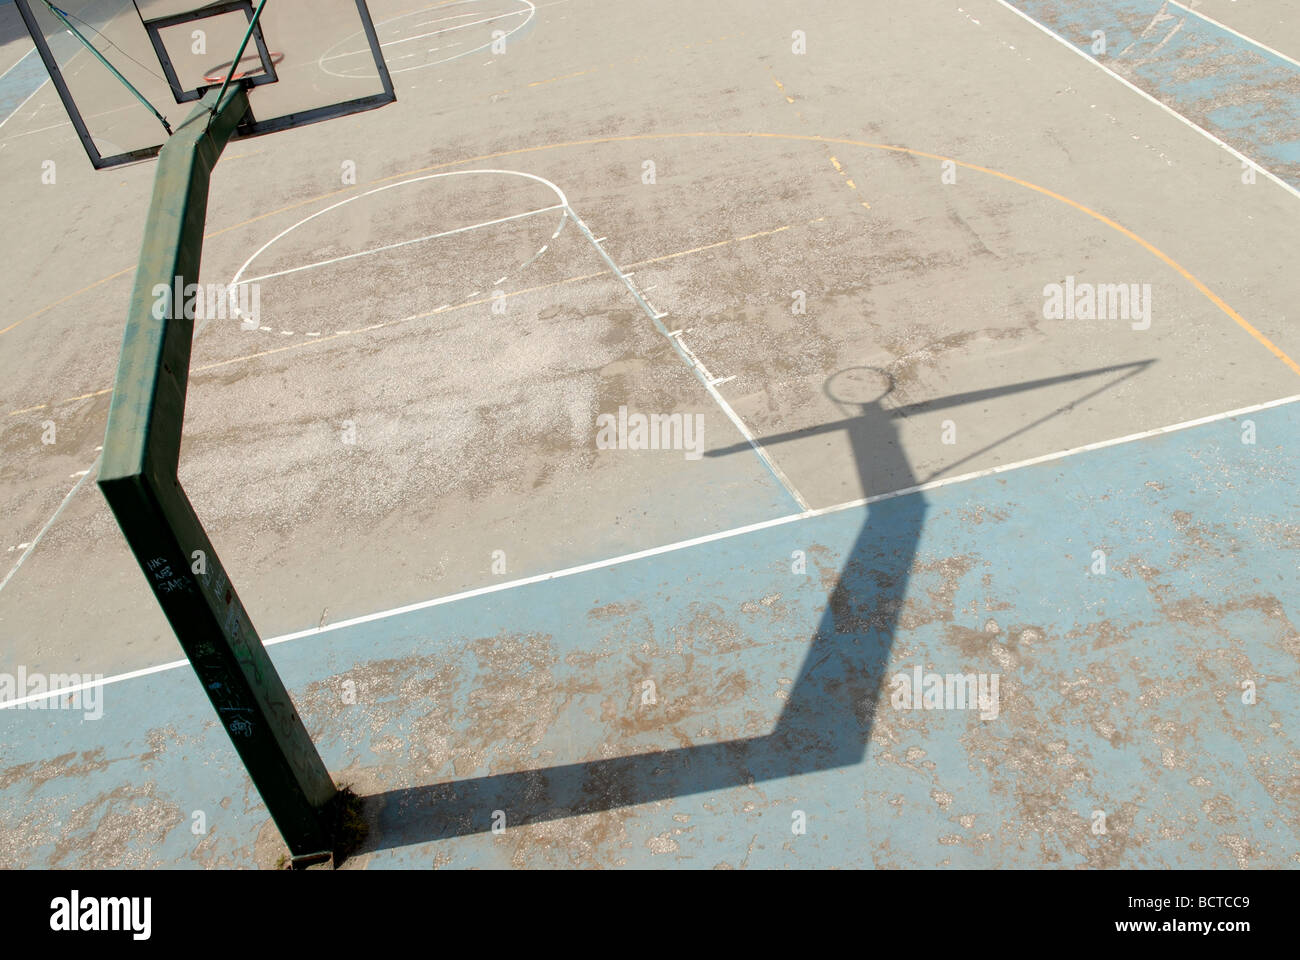 OLD BASKETBALL COURT - Stock Image